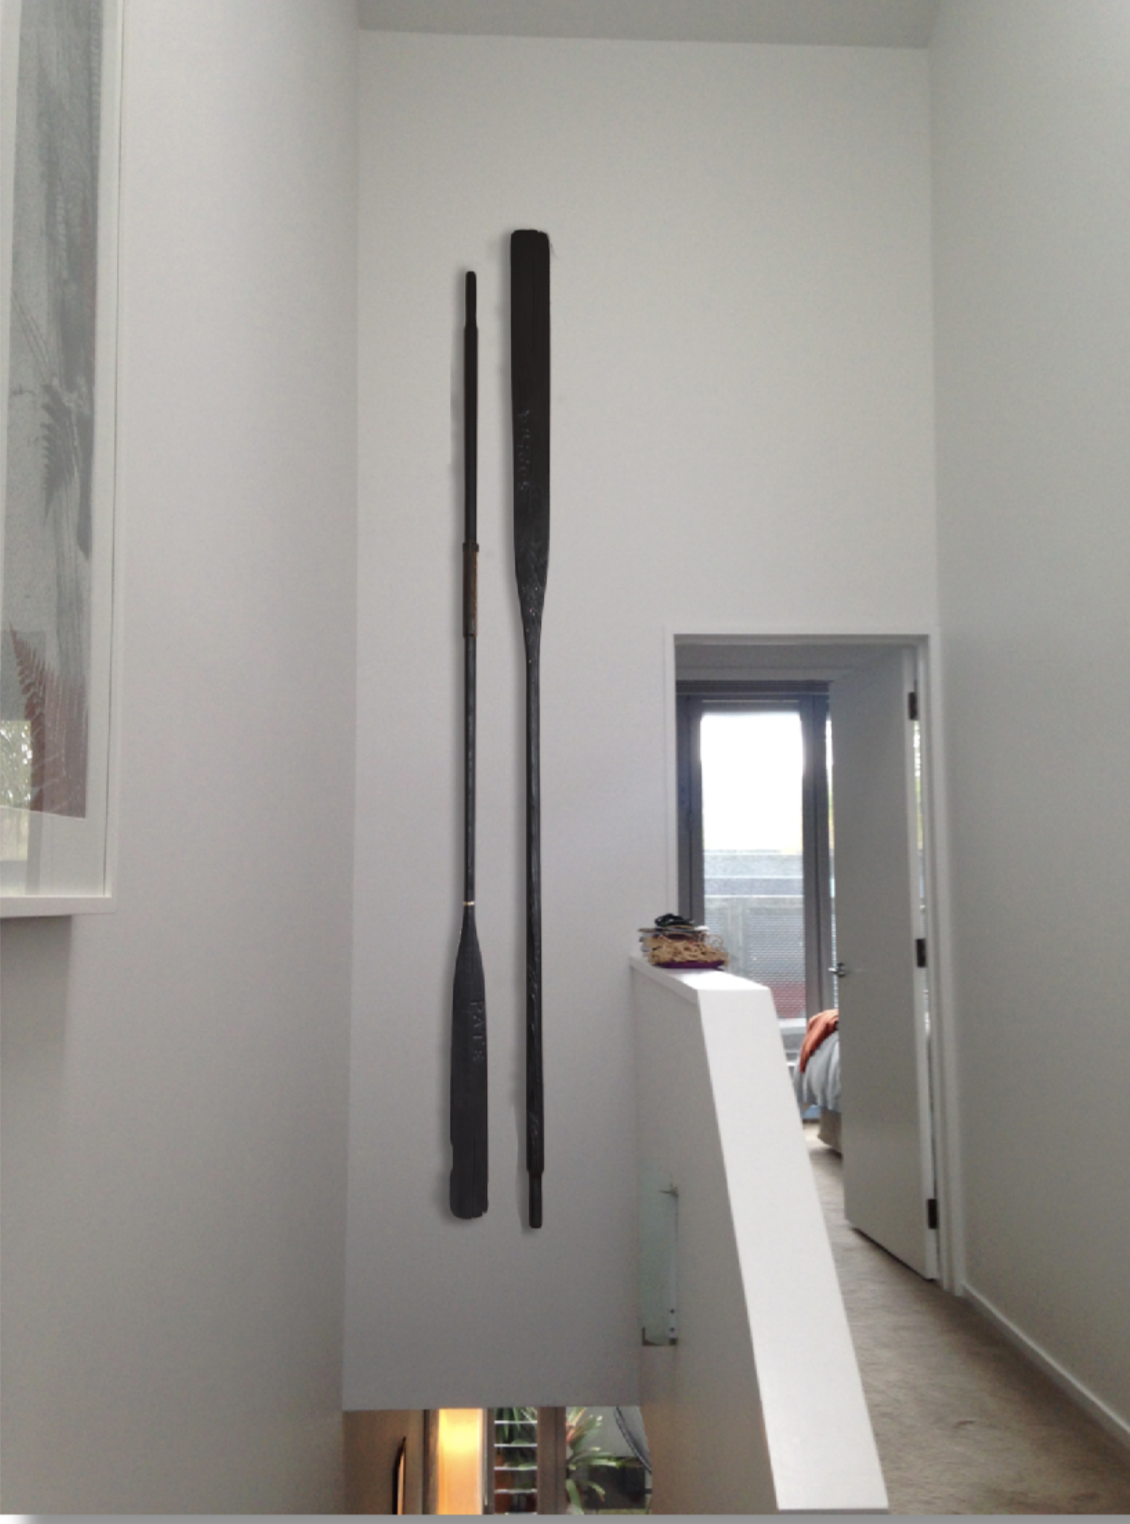 Antique de-commissioned wall hung oars - Sophia Pate 2017.  Private collection Auckland.